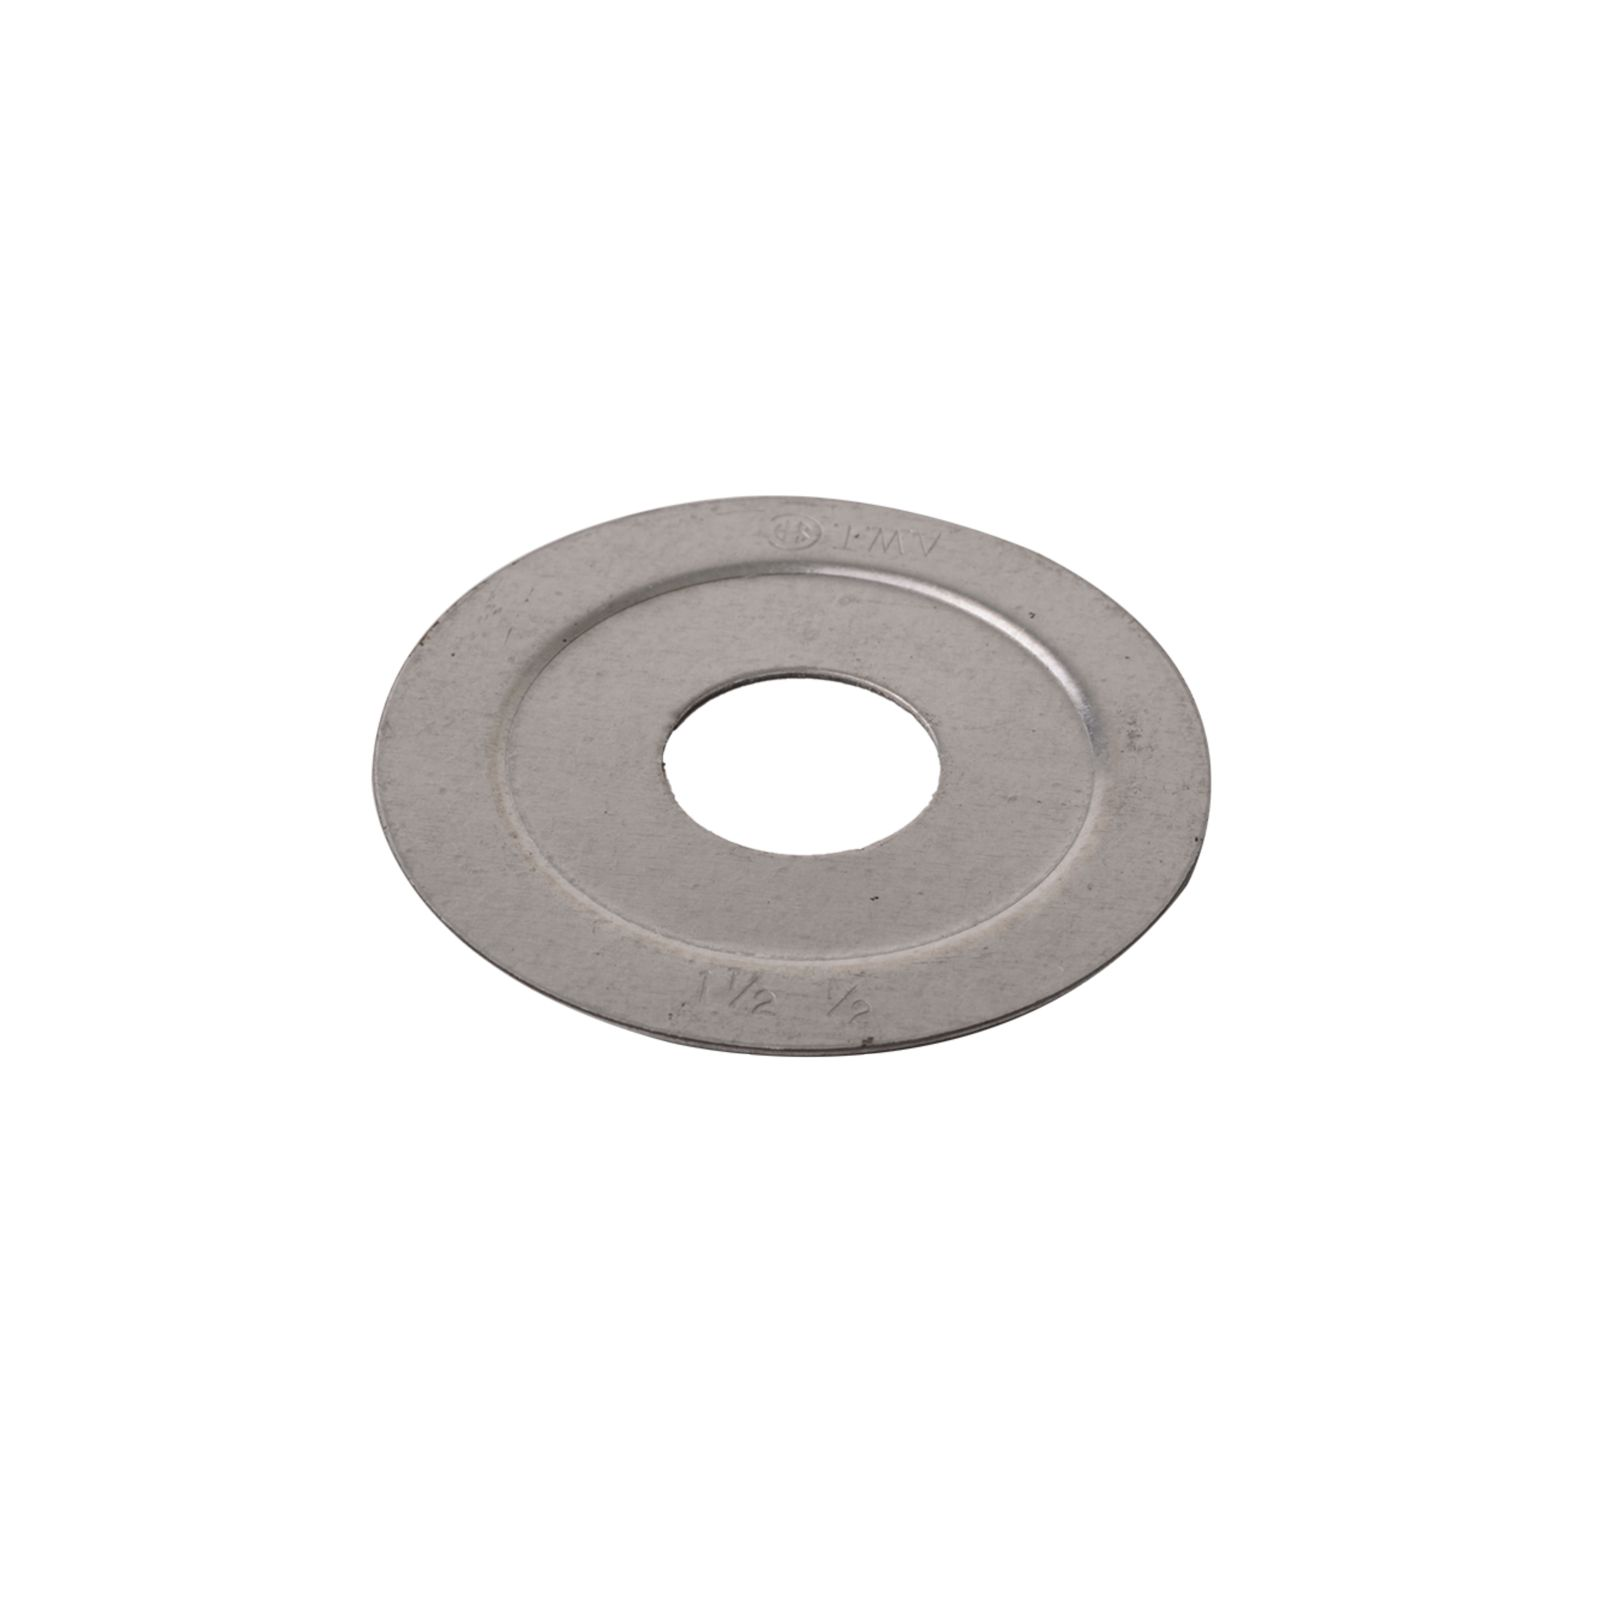 "DiversiTech PI913 - Reducing Washer - Reduces Hole From 1 1/2"" To 1/2"", Pack of 4"